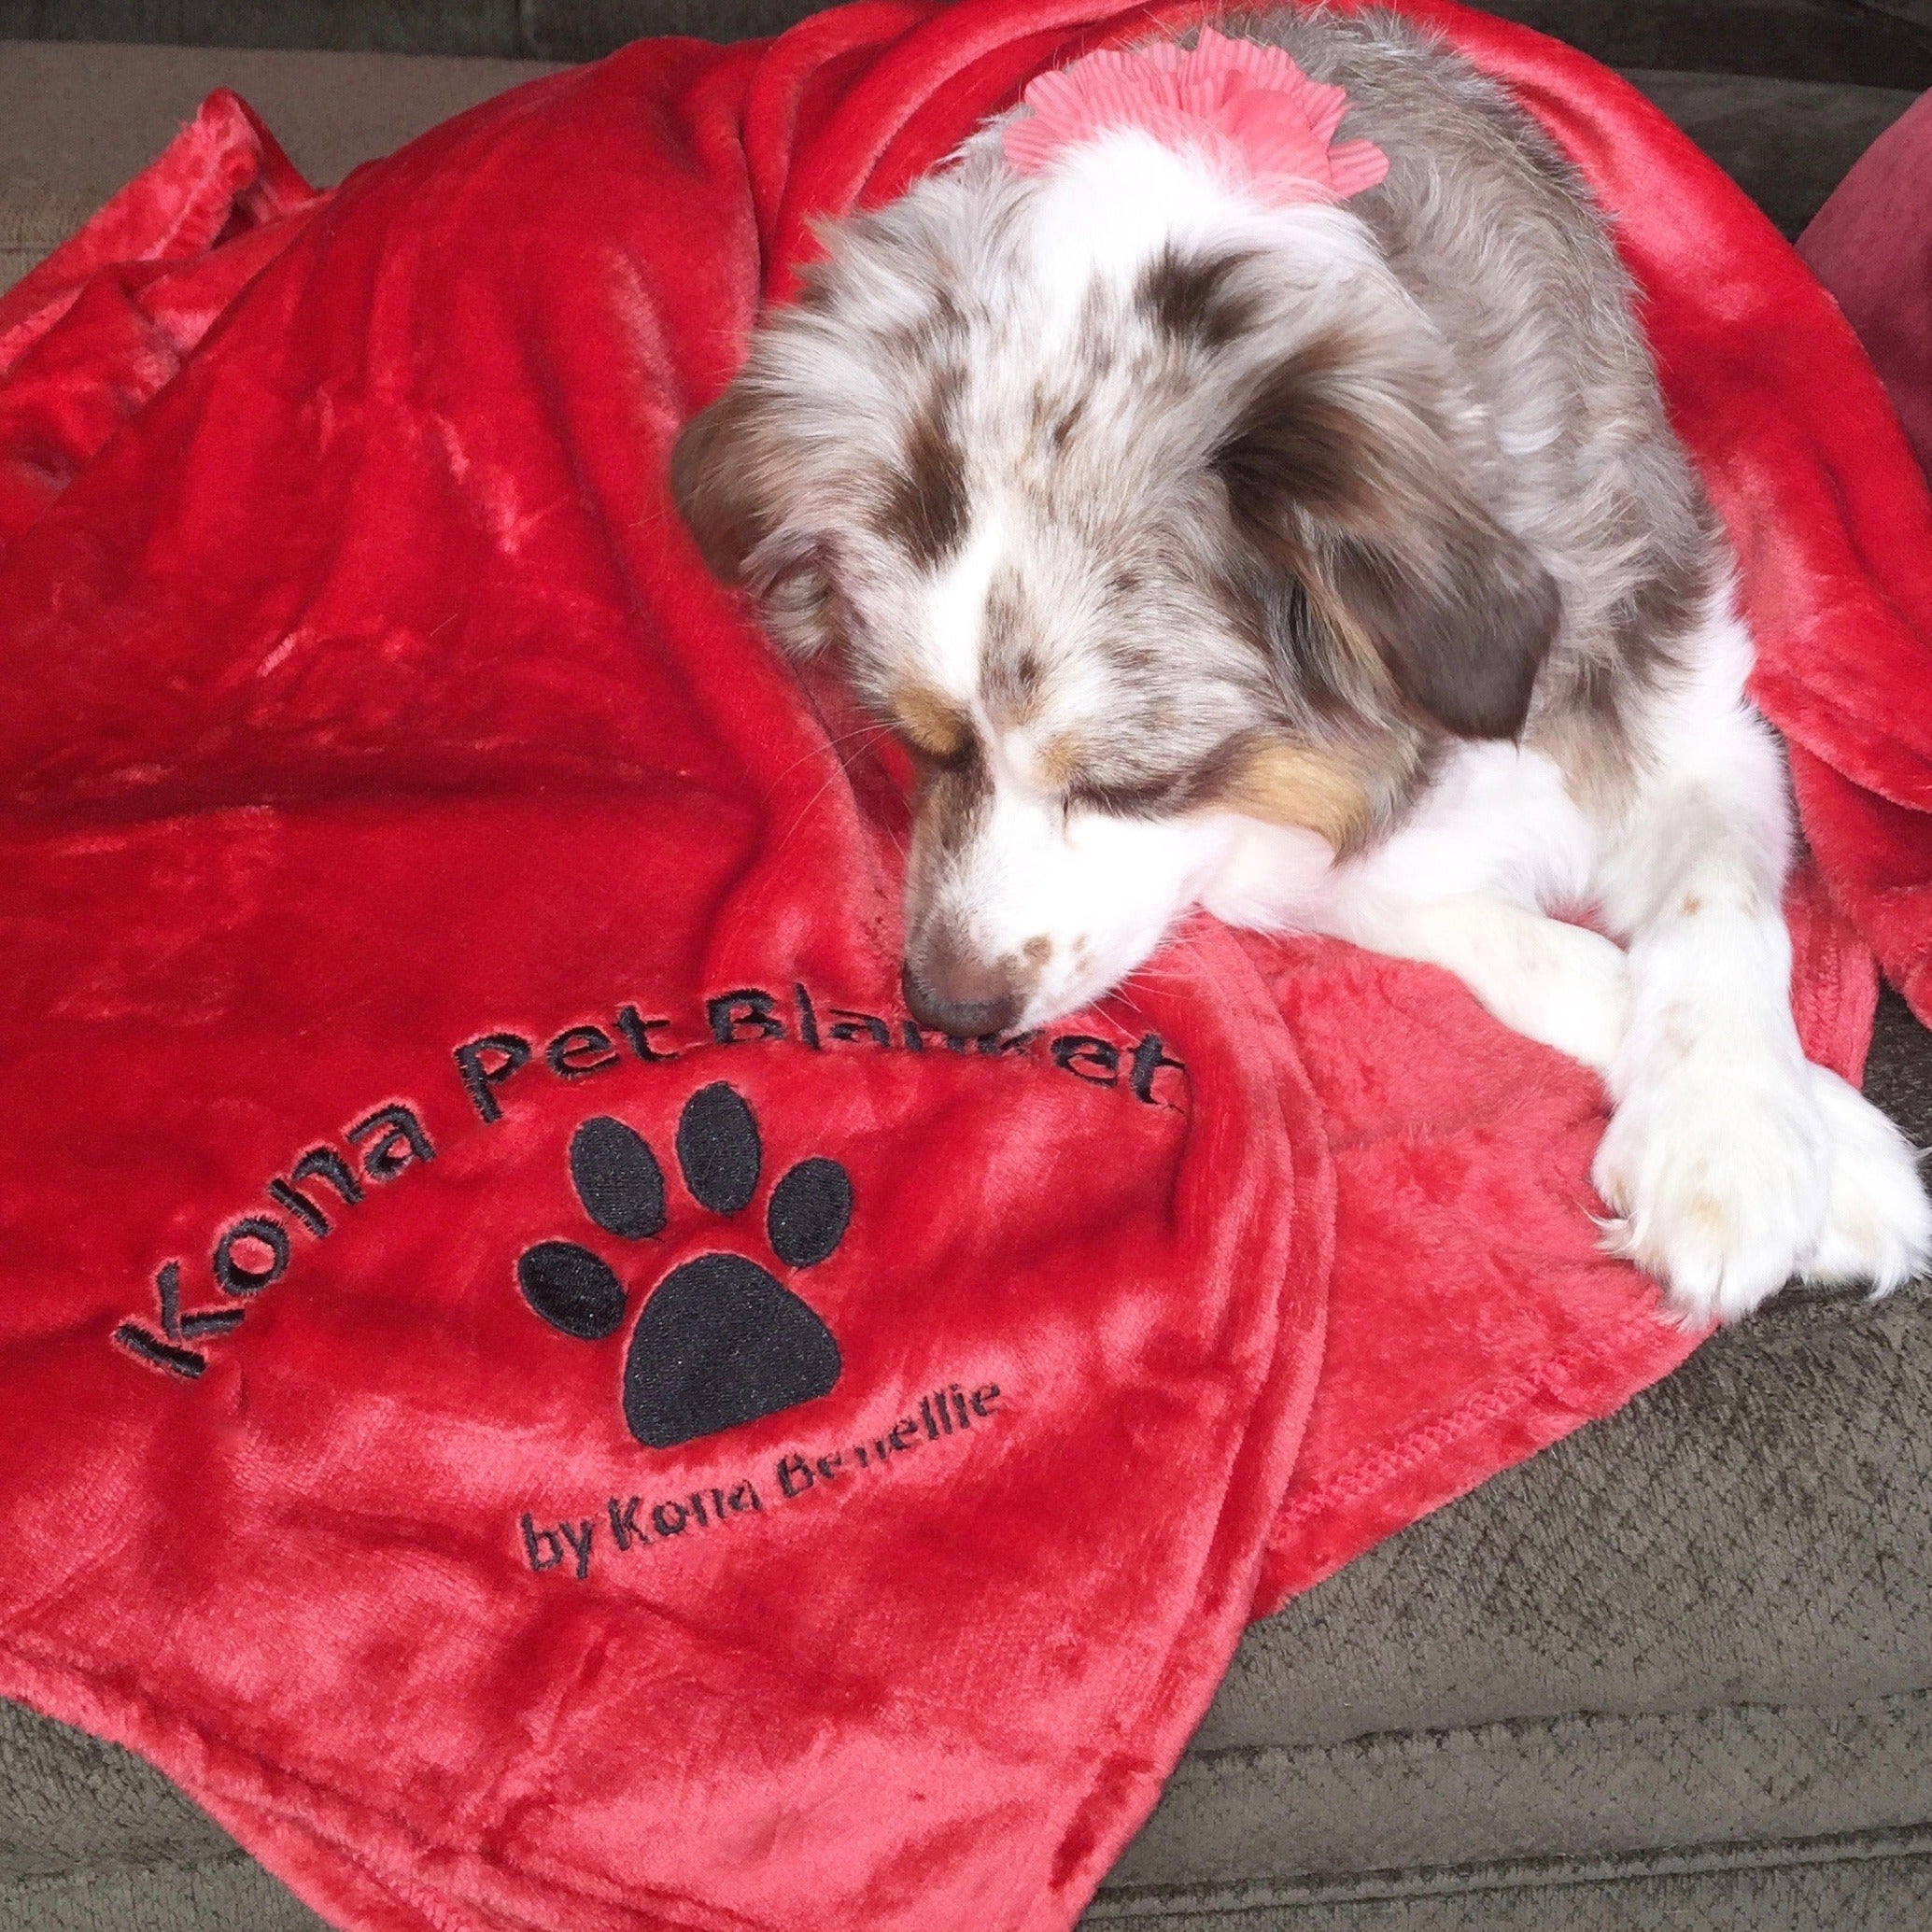 Kona Pet & Dog Blanket with Charity Donation of Pet Blank...